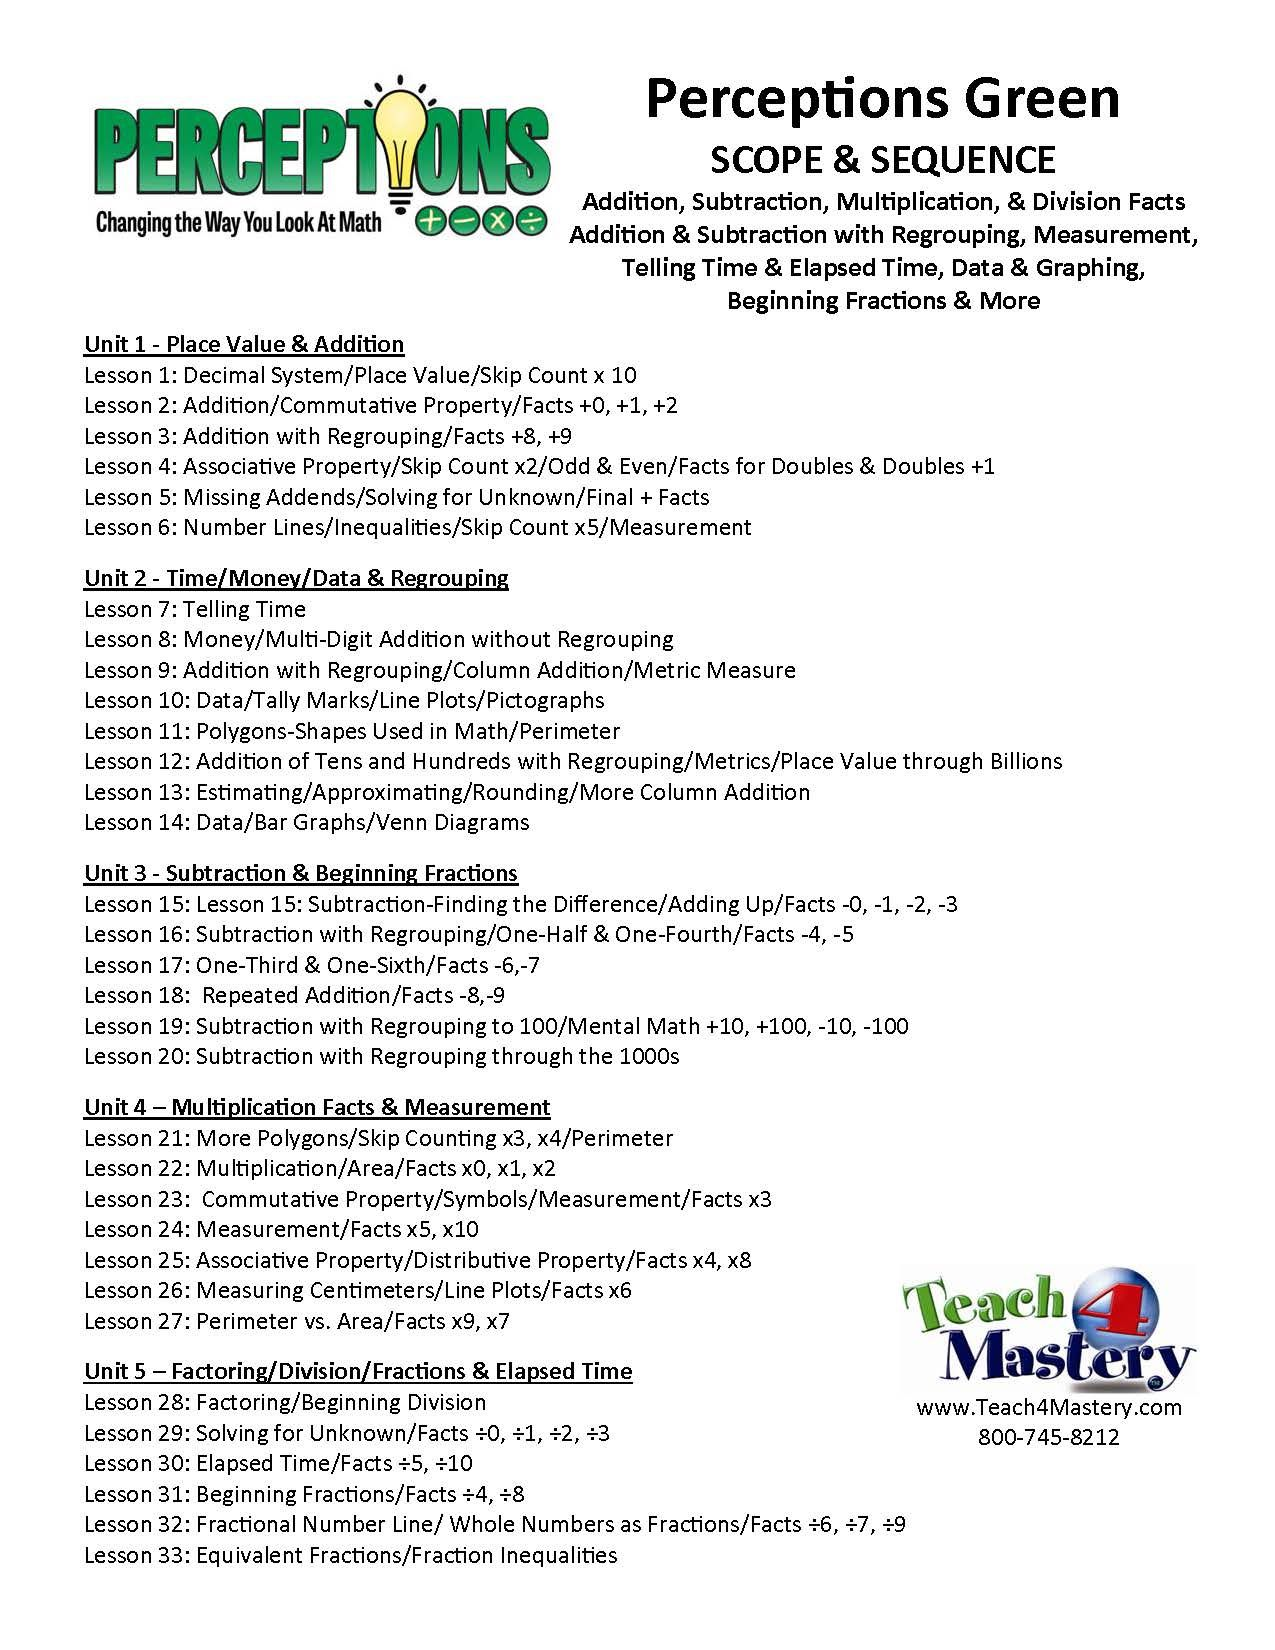 Worksheets Mathematical Story About  Addition,subtraction,multiplication And Division perceptions green scope sequence great for summer school review an intensive math intervention struggling students addition subtraction multiplication division facts addition